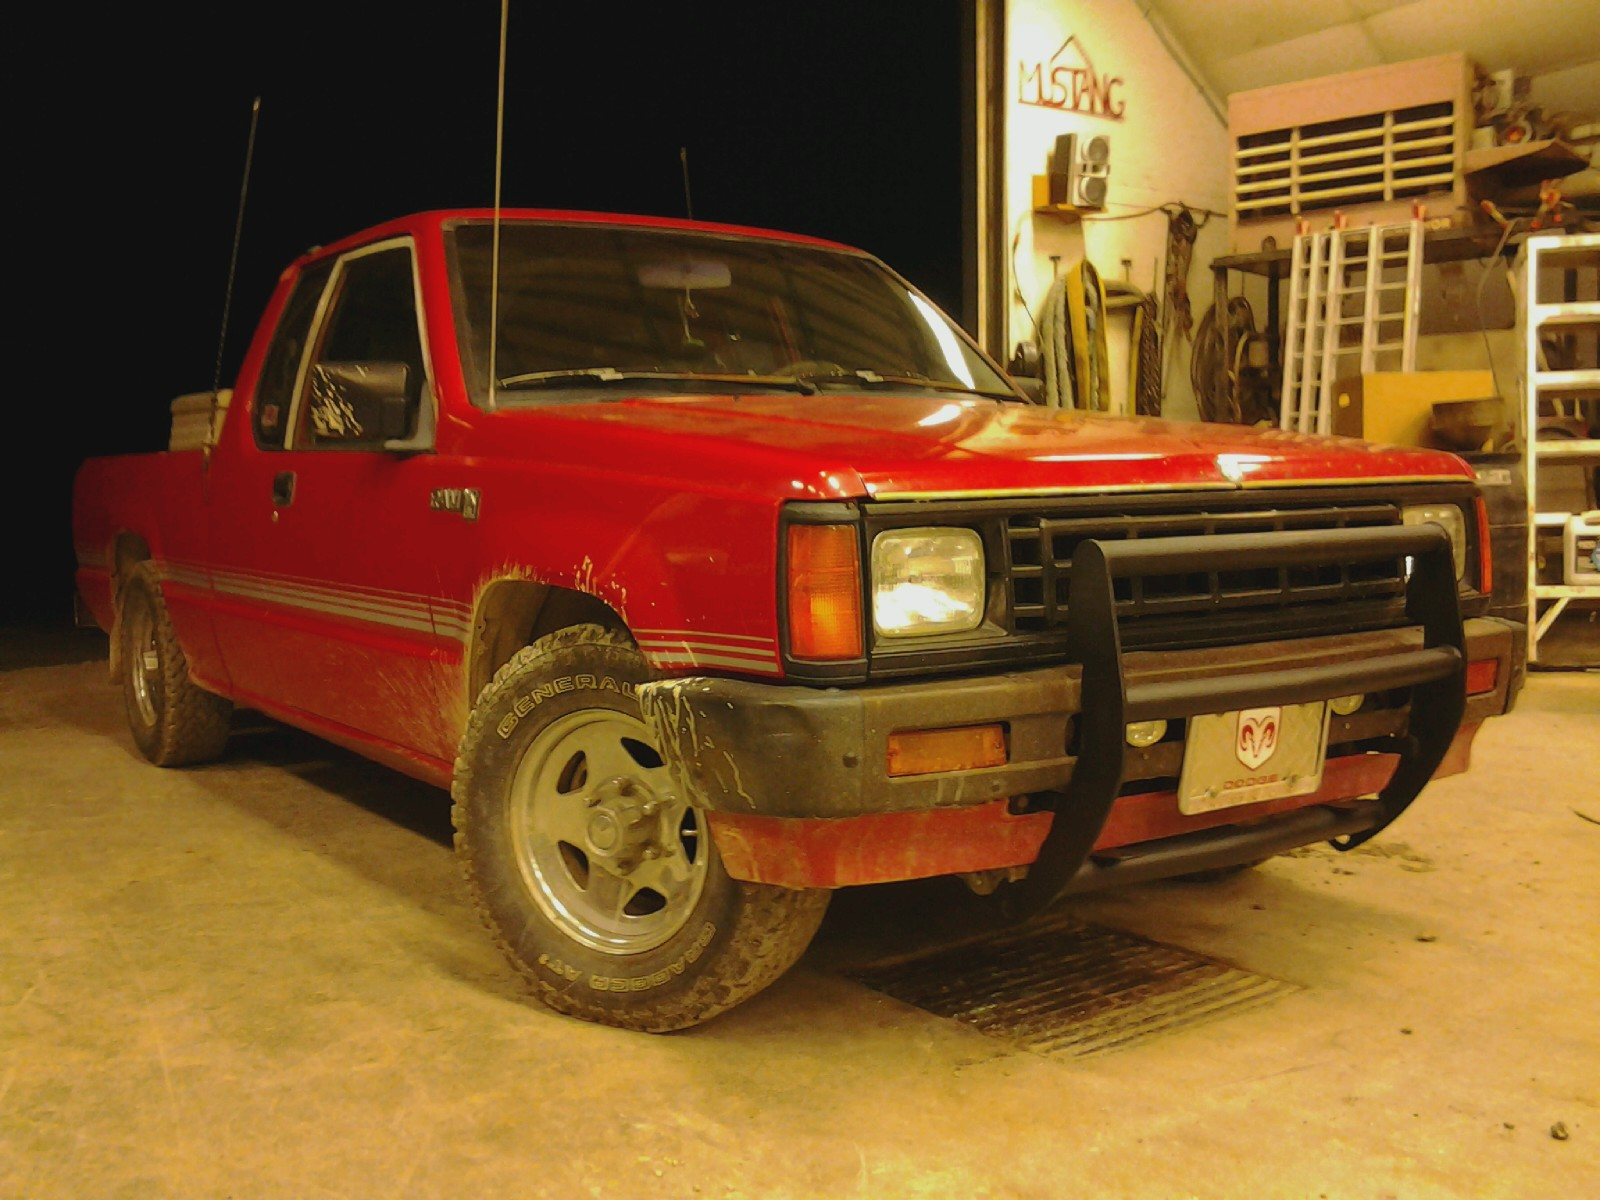 50 additionally 6807 1990 Dodge Ram 50 Pickup 7 further File Will browns 1965 dodge w200 in addition 2005 Dodge Power Wagon Tactical Response Field Unit Truck At Dragon Con Atlanta Parade likewise Watch. on powerwagon